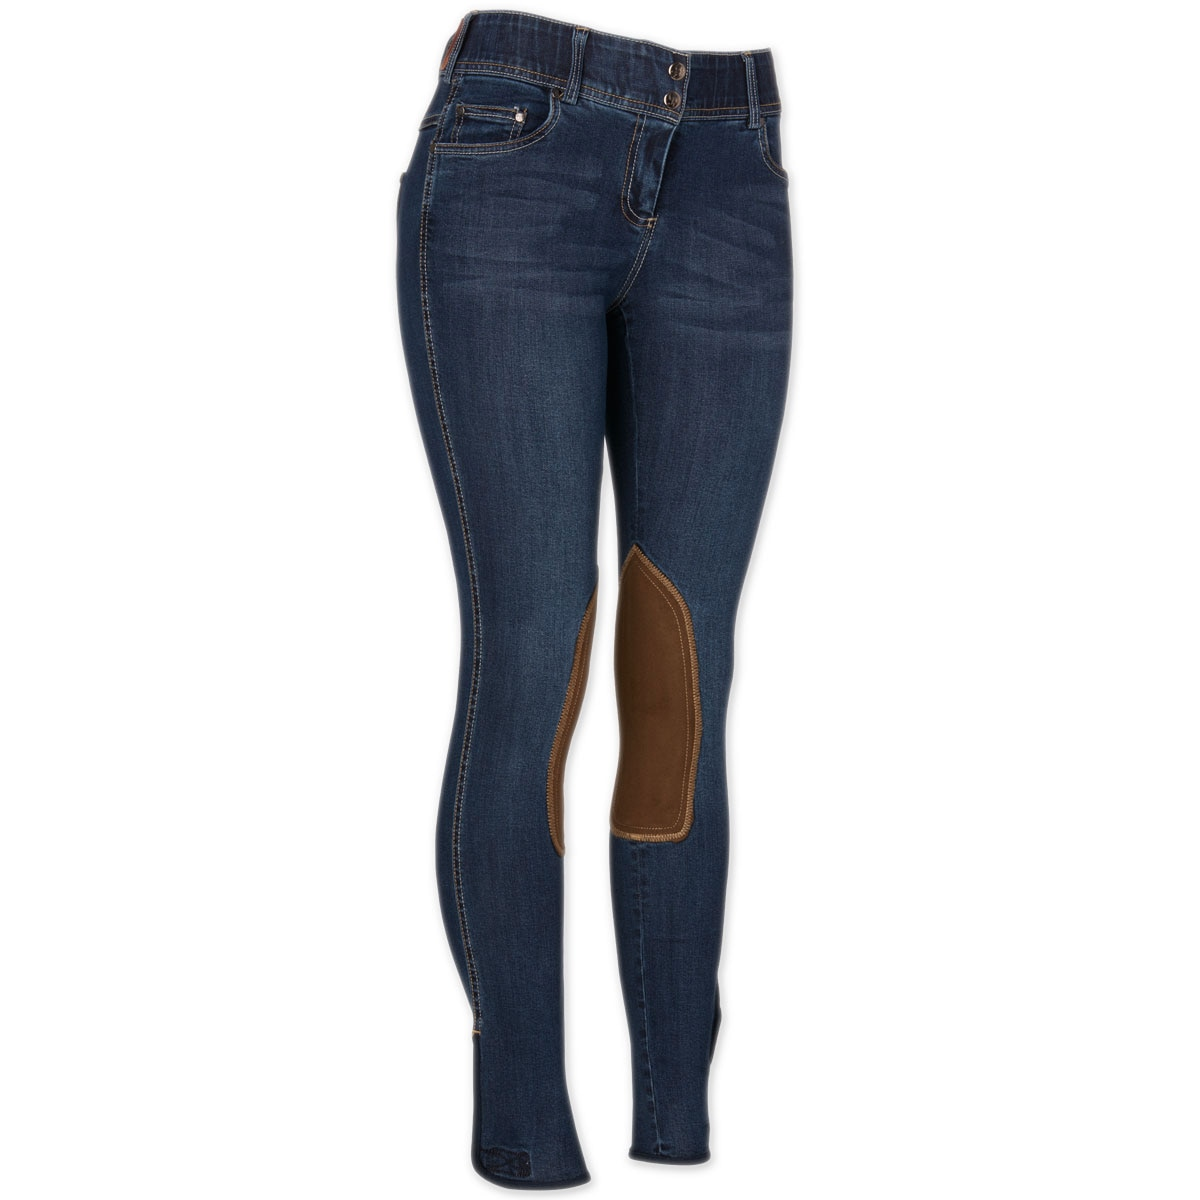 Goode Rider Equestrian Jean Knee Patch Breech